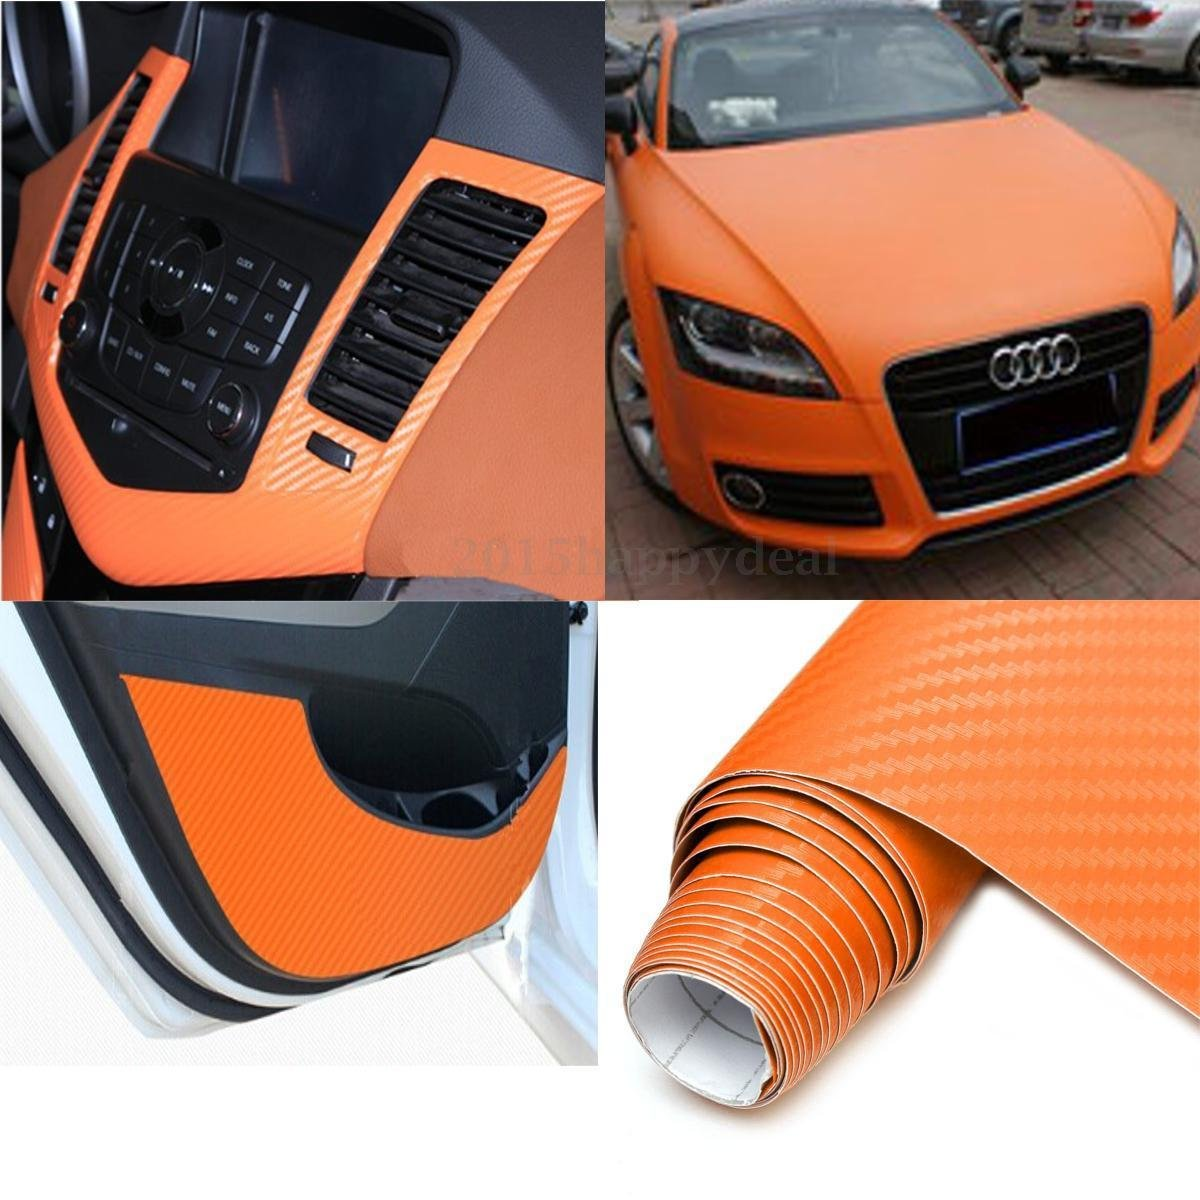 12 x 60 // 1FT x 5FT DIYAH 4D Orange Carbon Fiber Vinyl Wrap Sticker with Air Realease Bubble Free anti-wrinkle